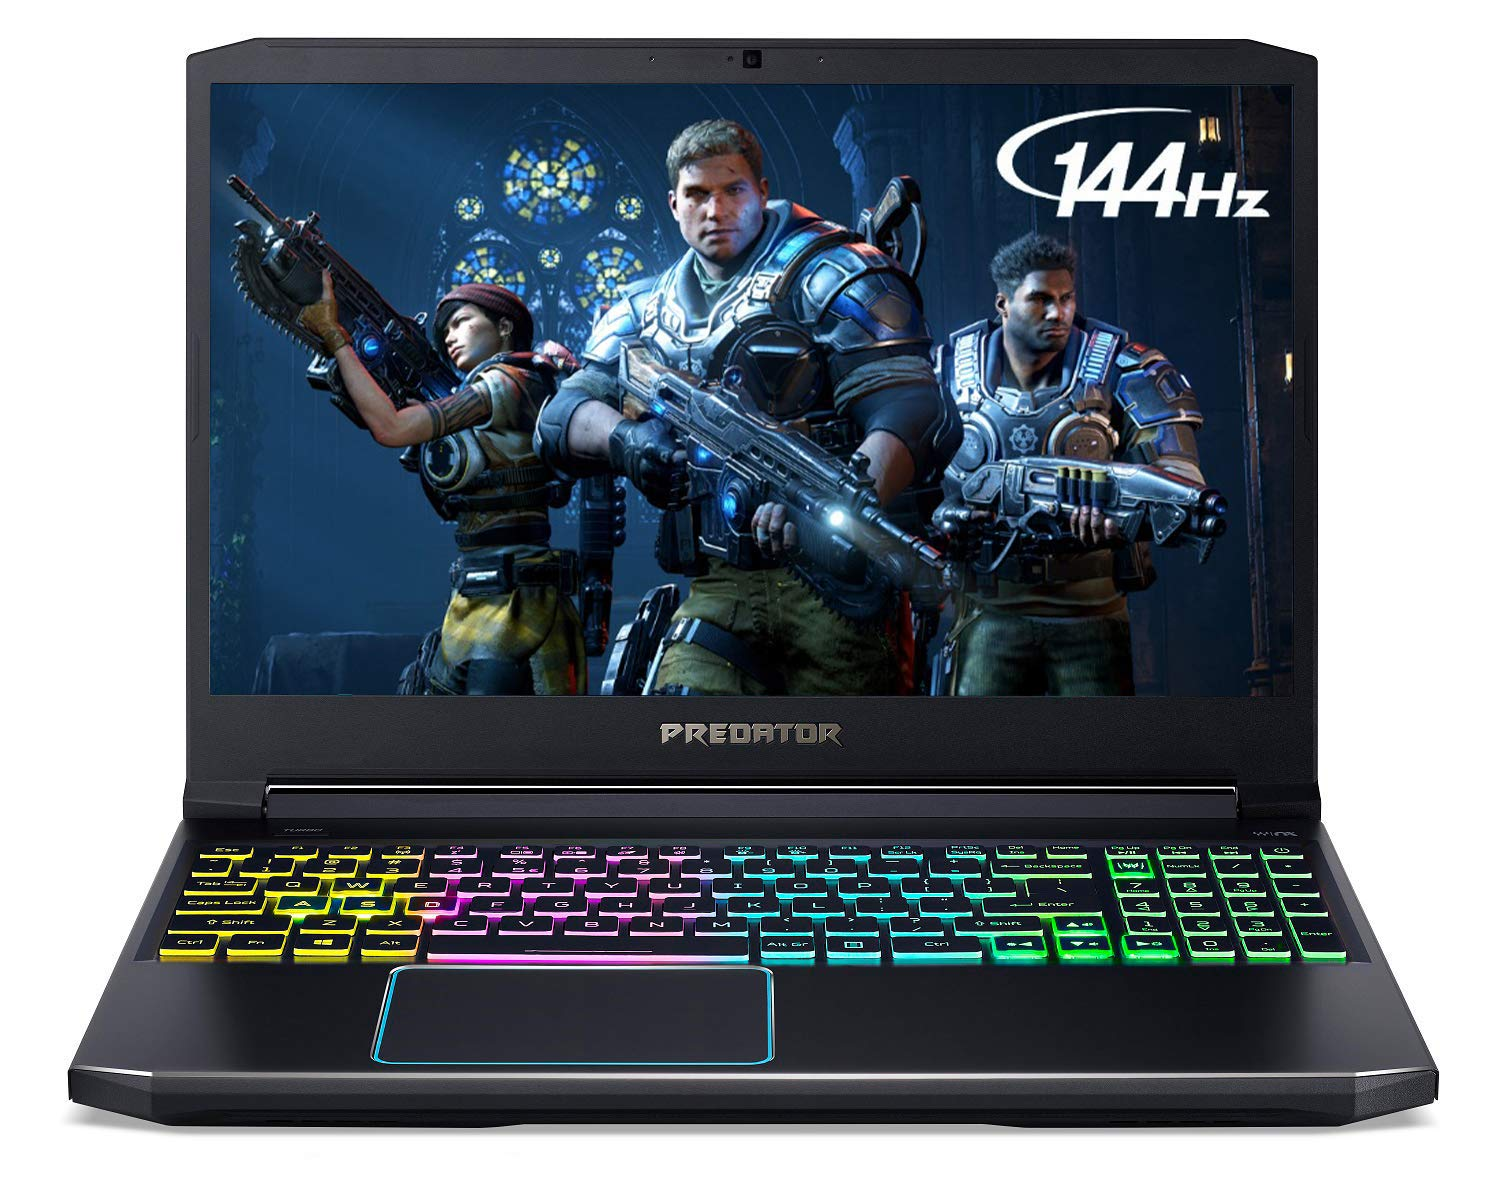 Best Gaming Laptops for Call of Duty Warzone